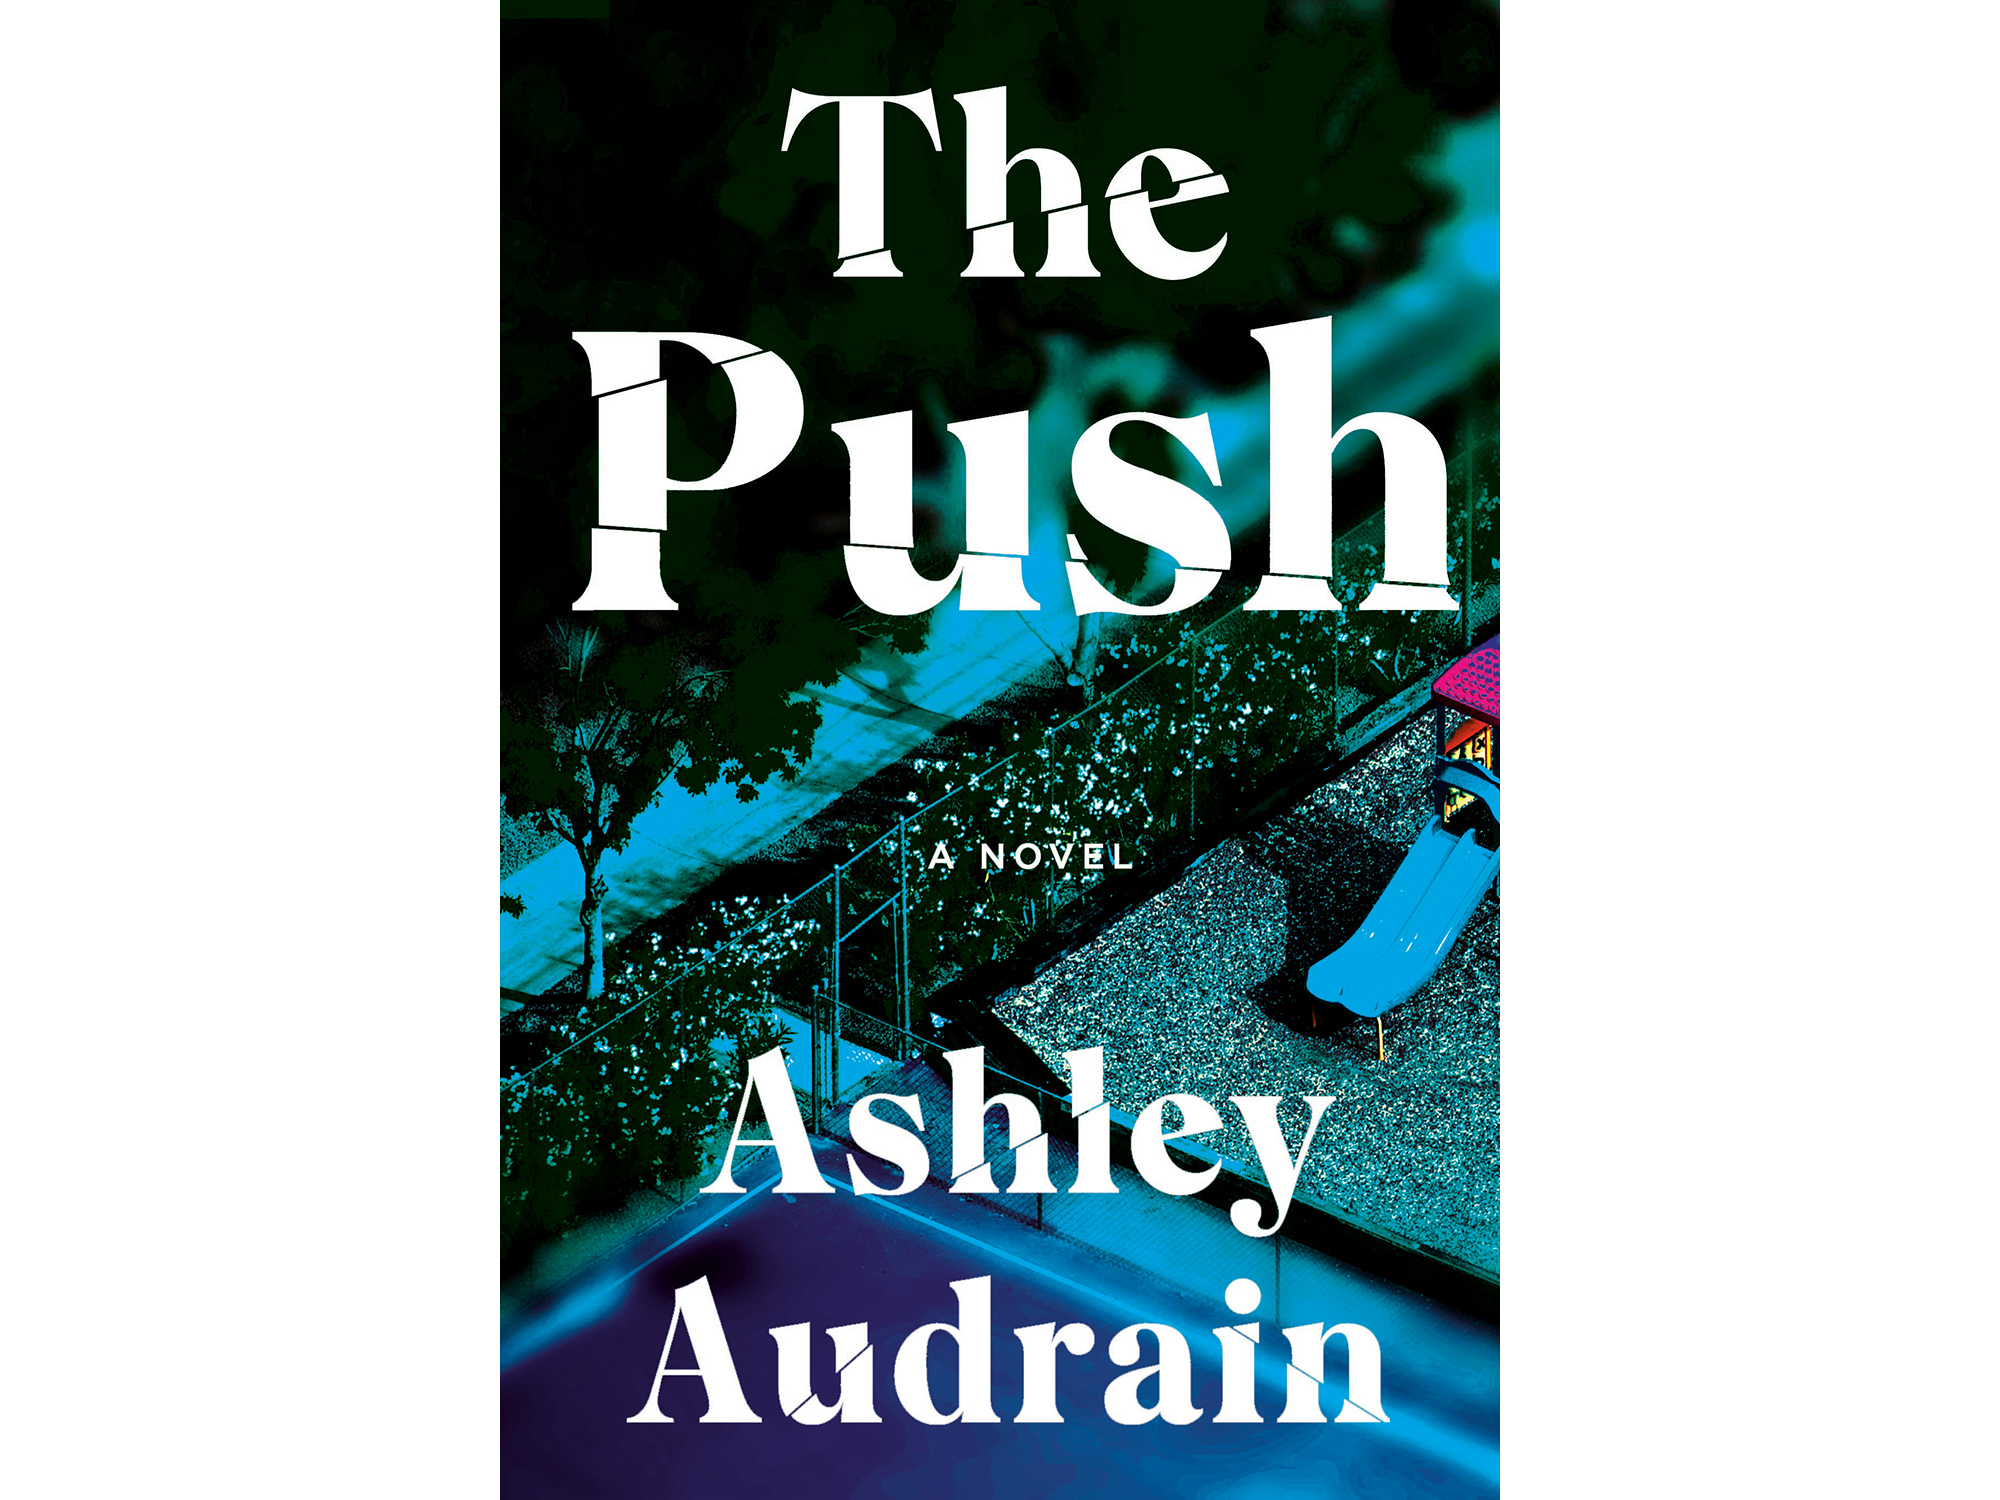 The cover of Ashley Audrain's The Push